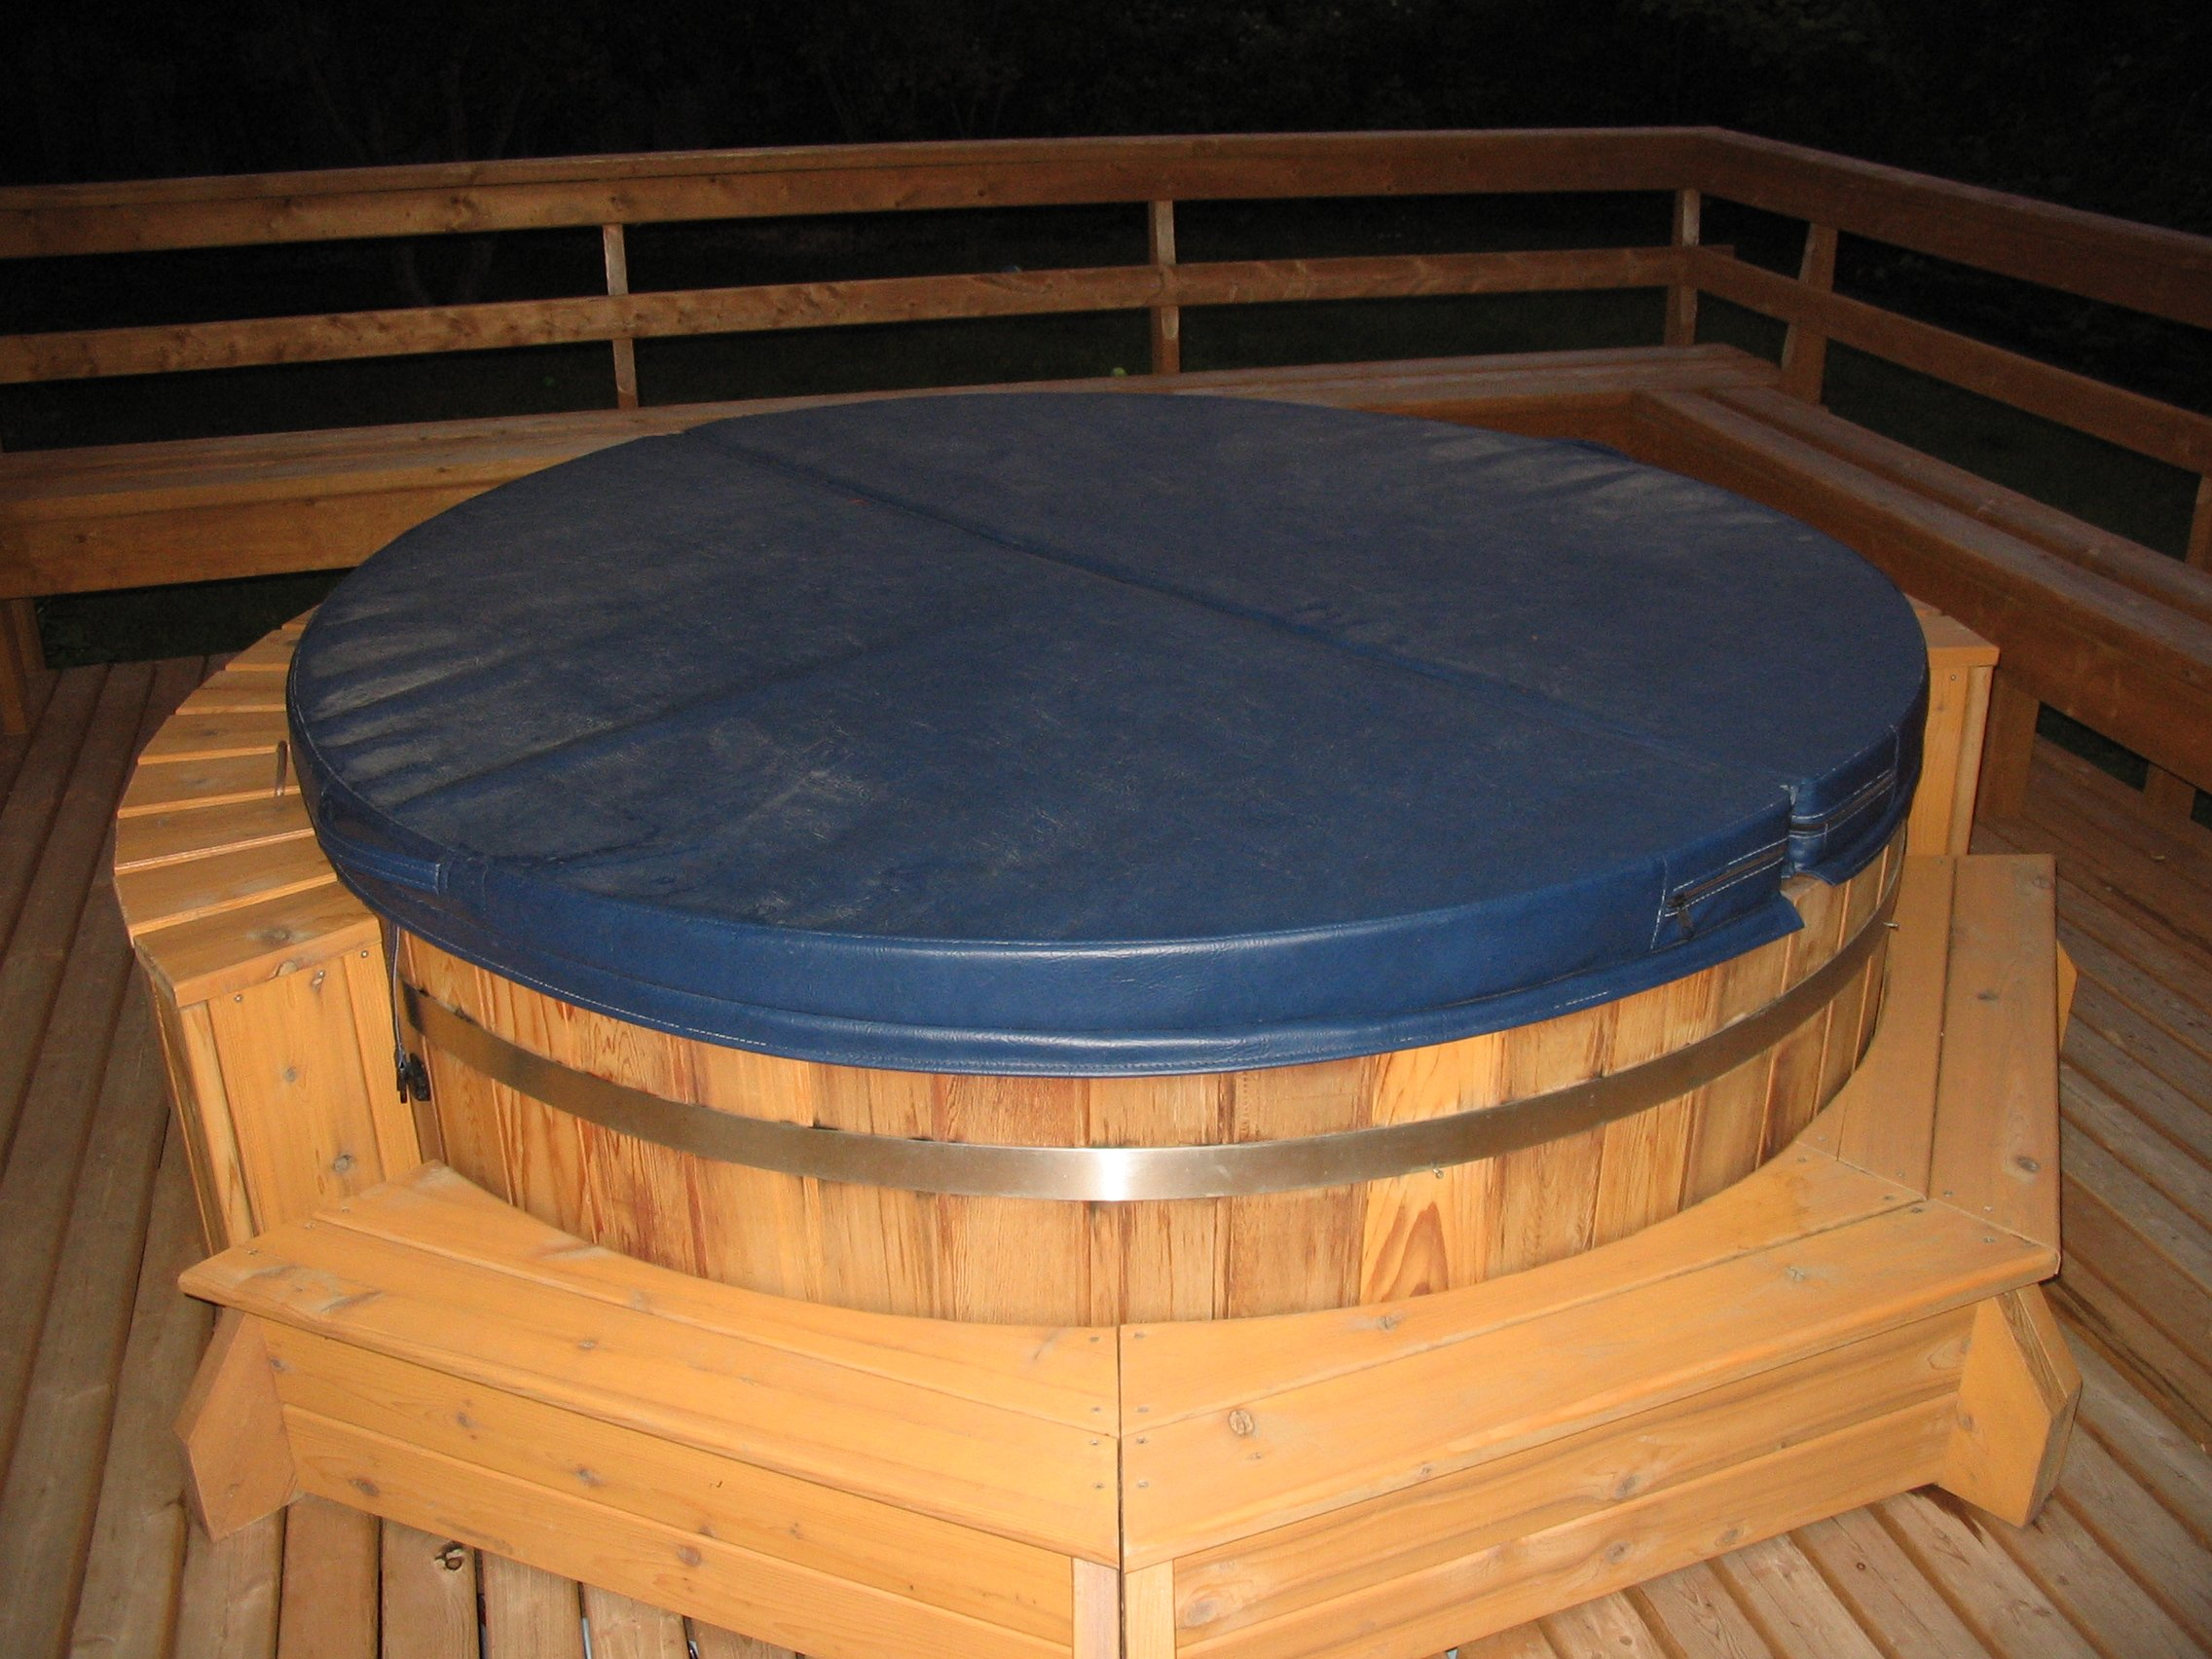 Northern Lights Cedar Tubs - Cedar Hot Tub Picture Gallery